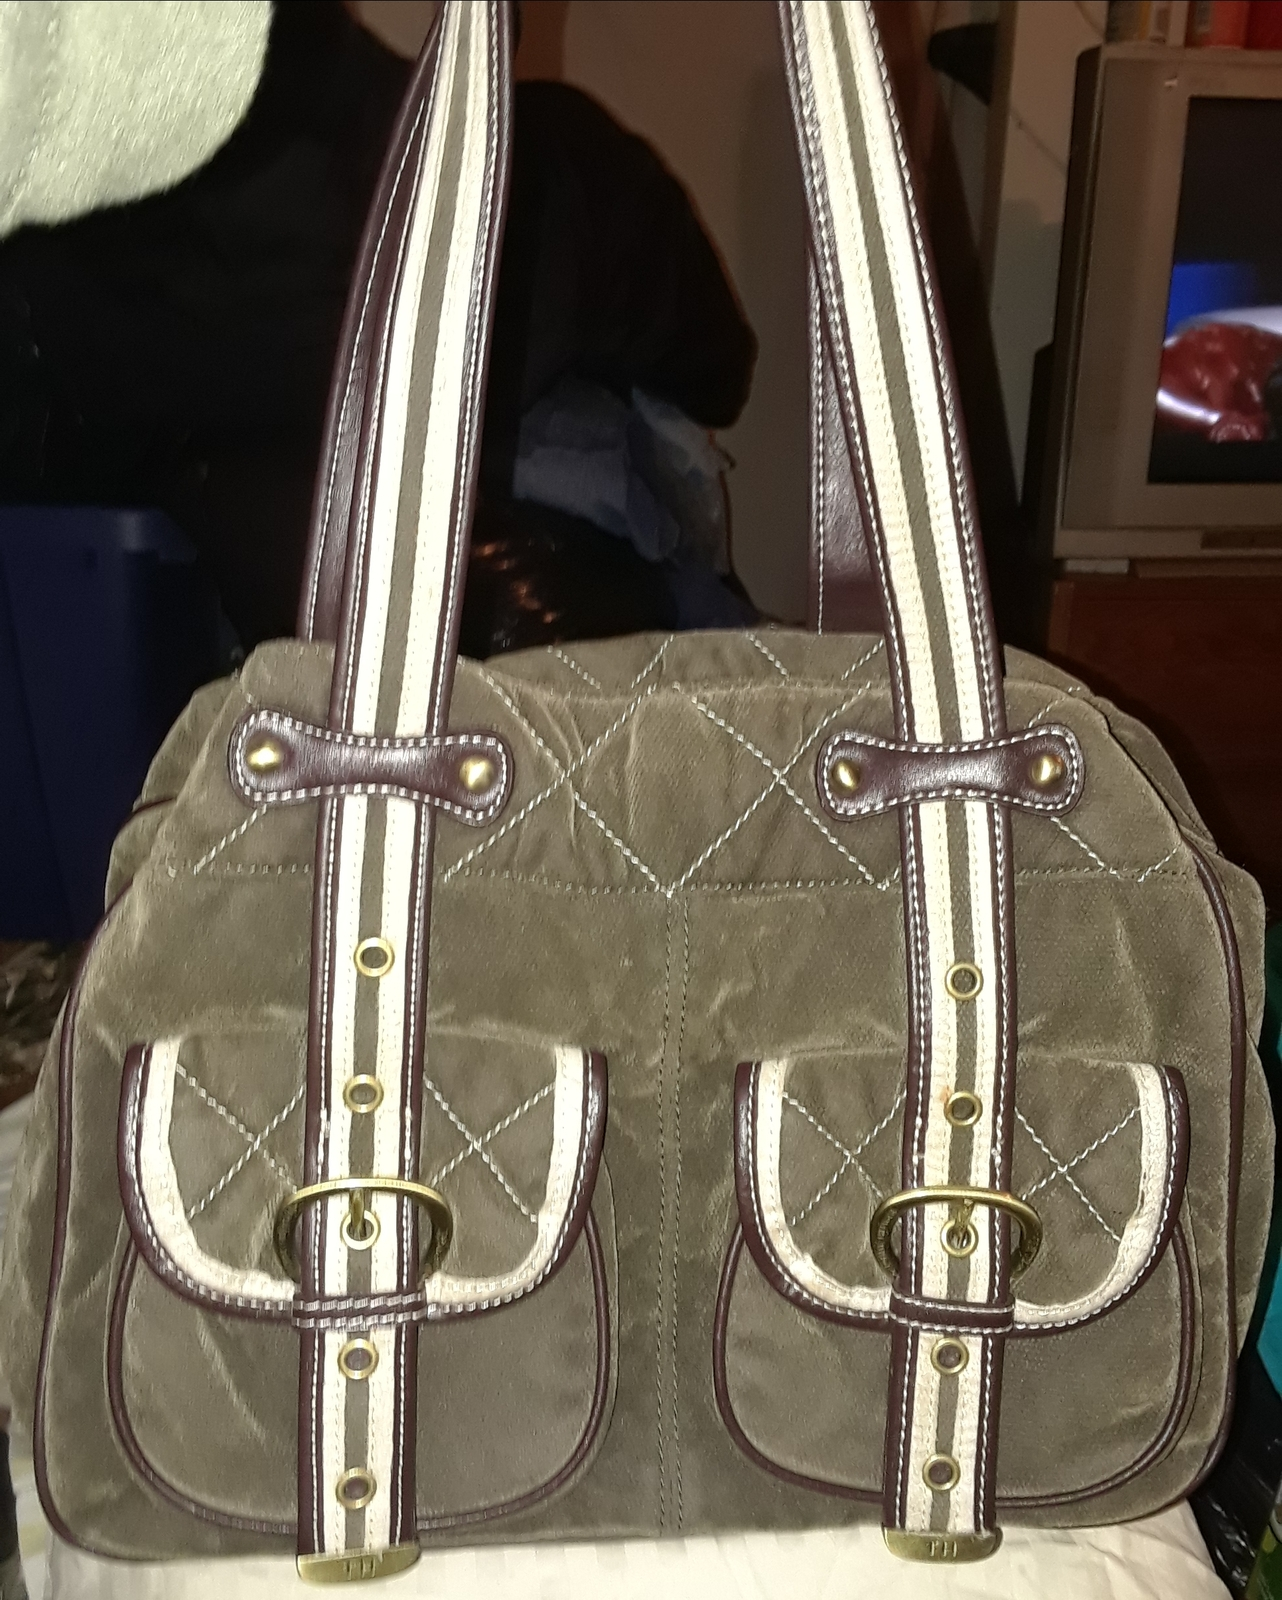 Tommy Hilfiger Velvet Shoulder Bag tote and 50 similar items e233f3ace13d4